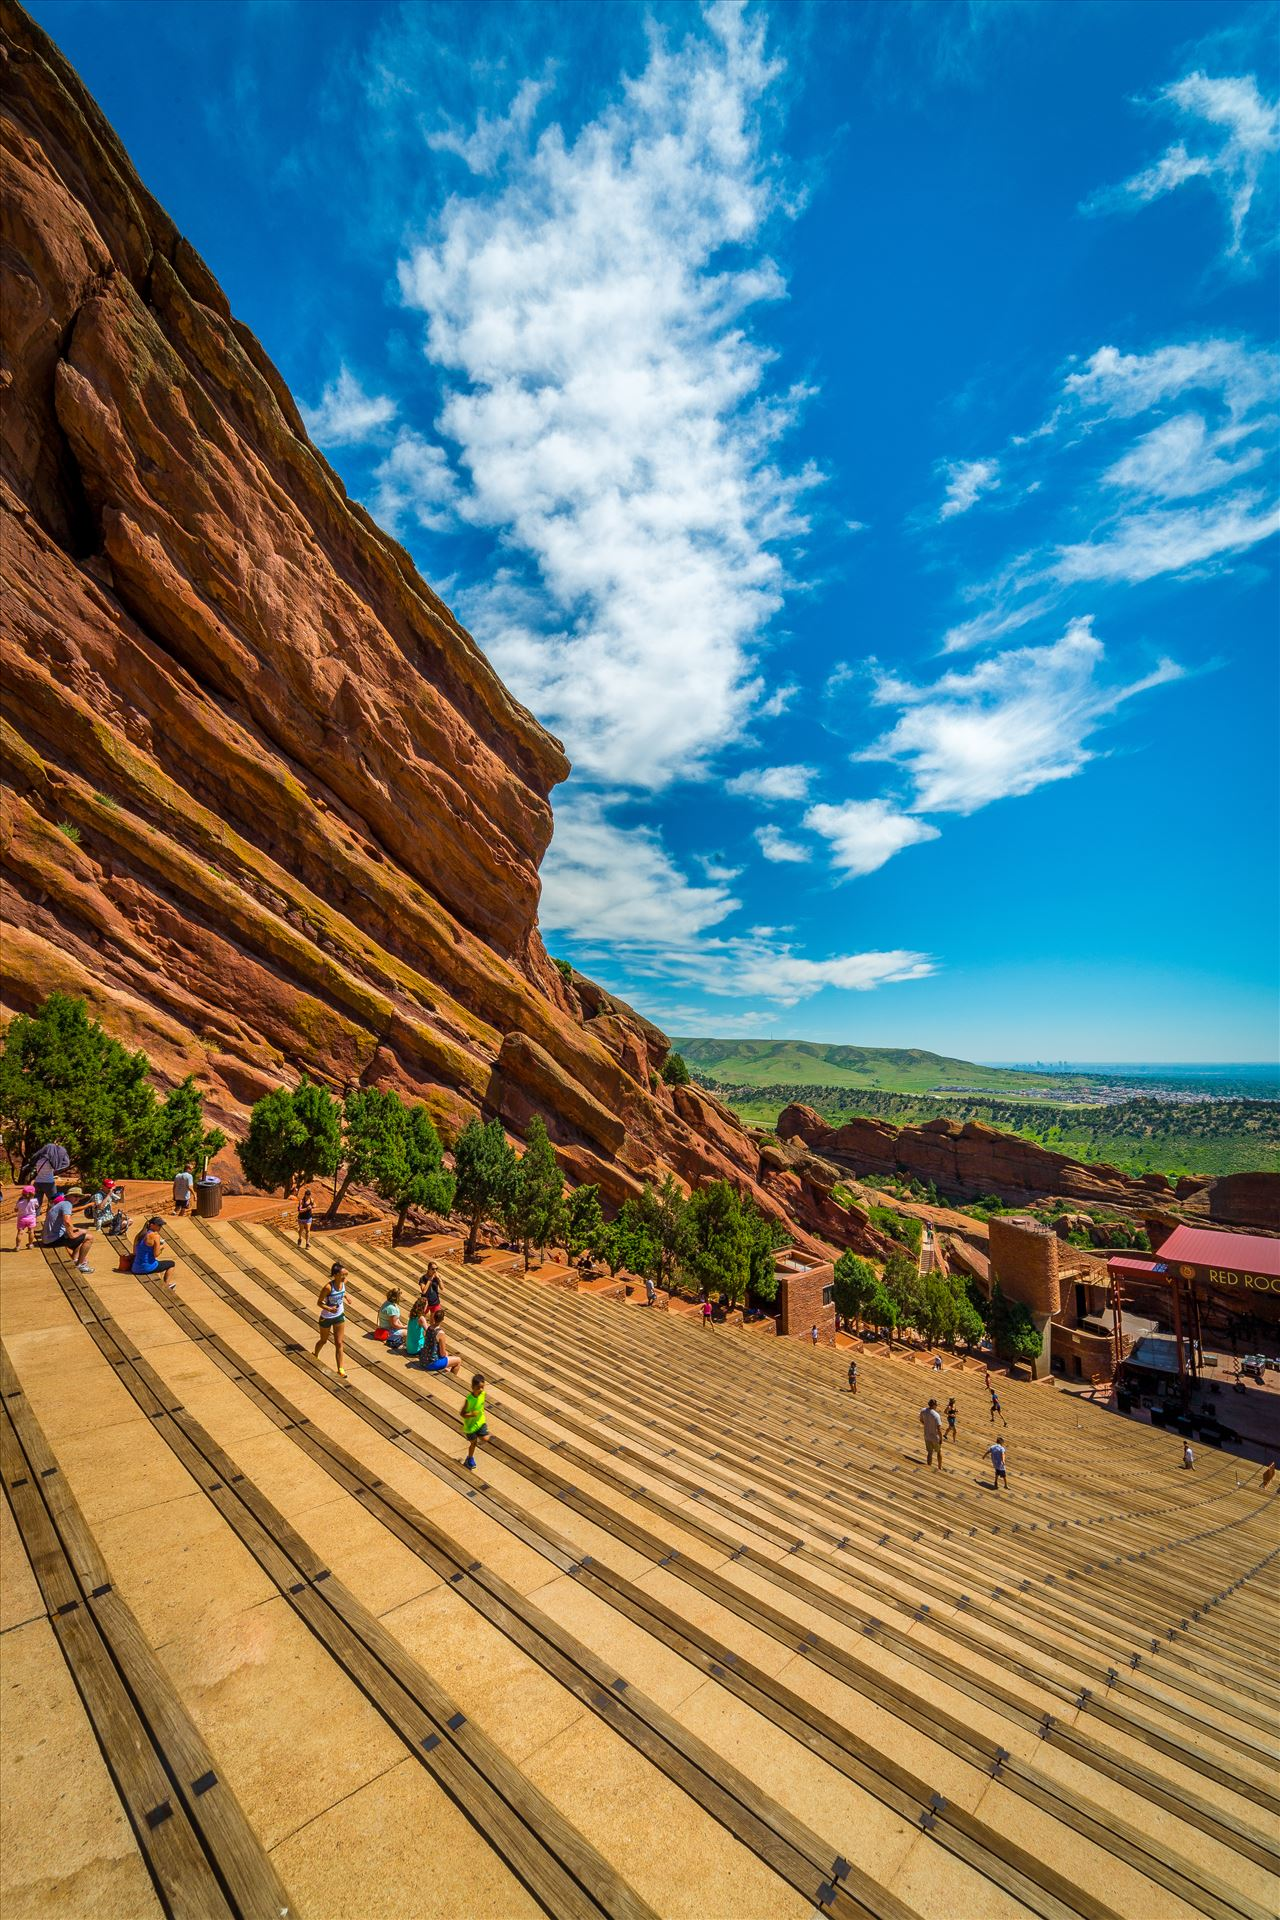 Red Rocks Amphitheater - People getting a workout at Red Rocks amphitheater on a warm Sunday morning. by Scott Smith Photos